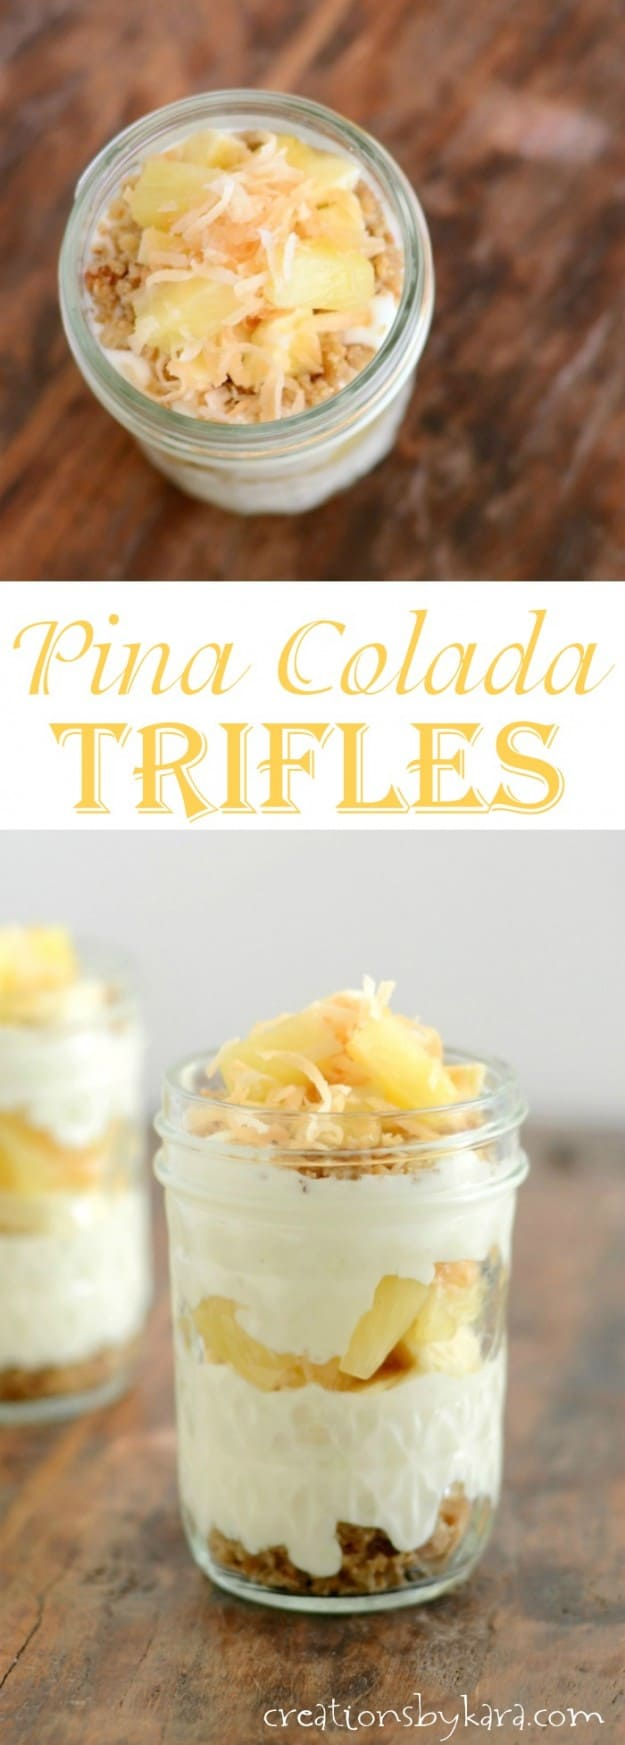 mini pina colada trifle recipe collage